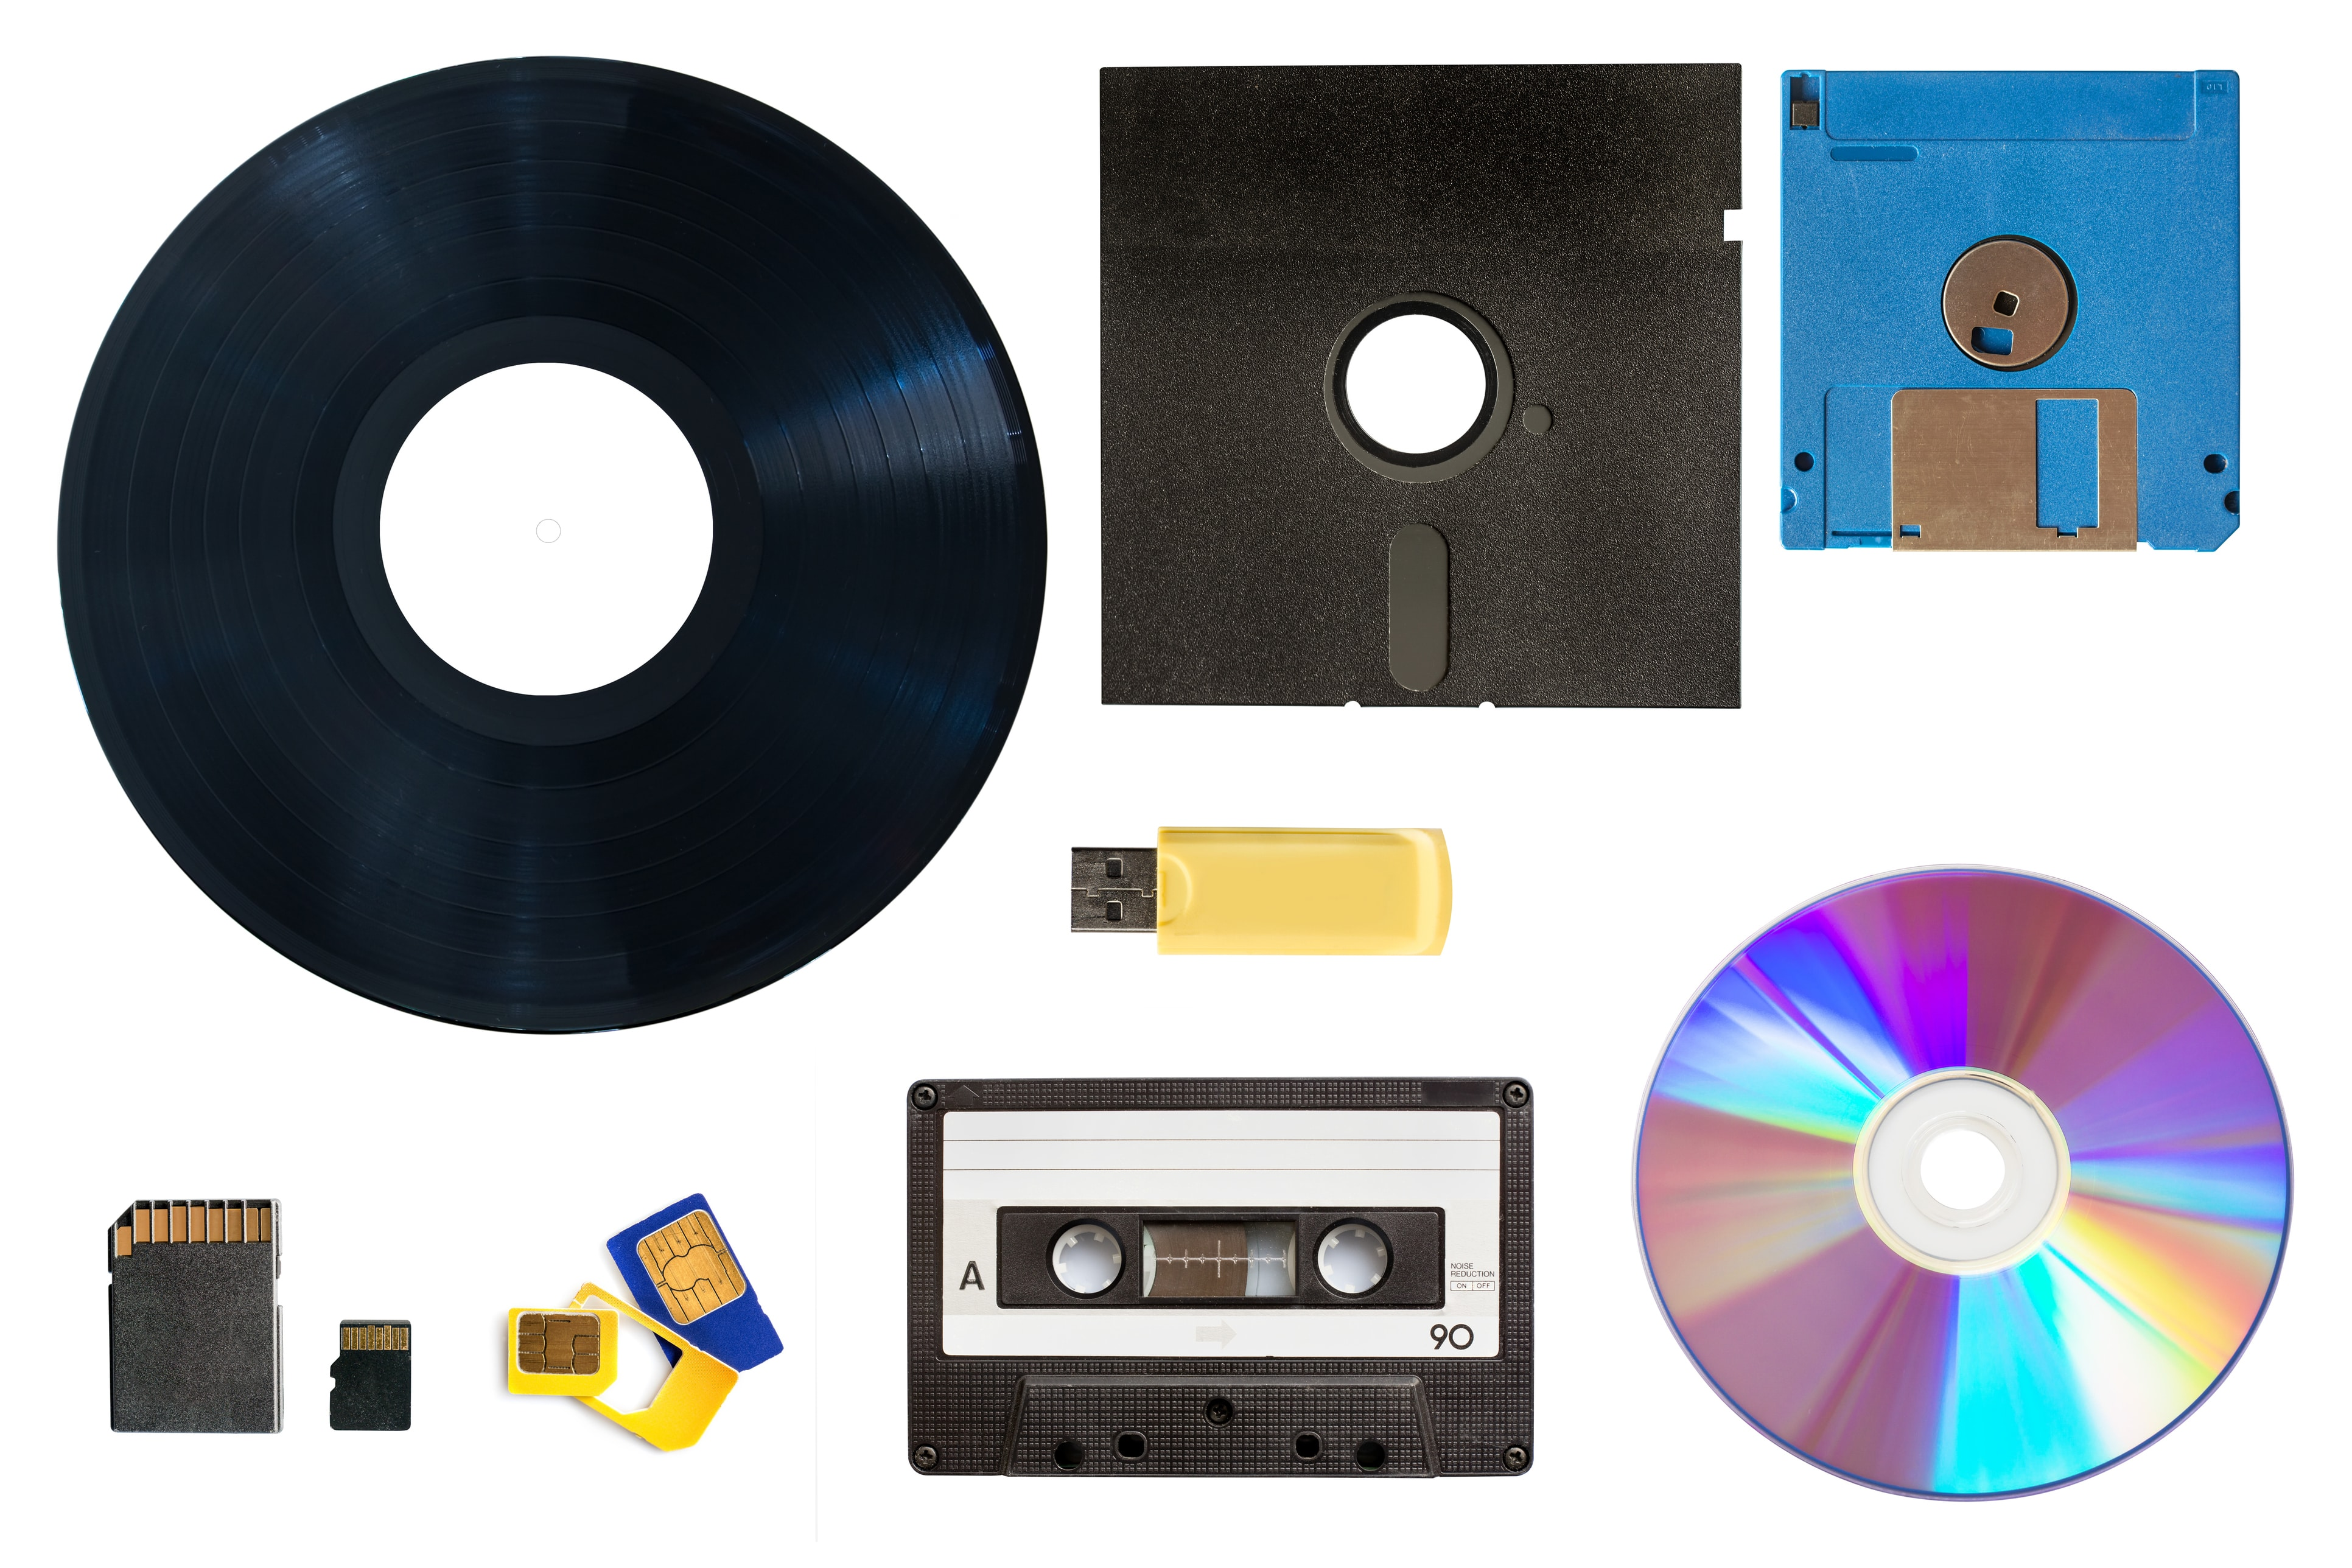 Evolution of technology data and media storage concept collage